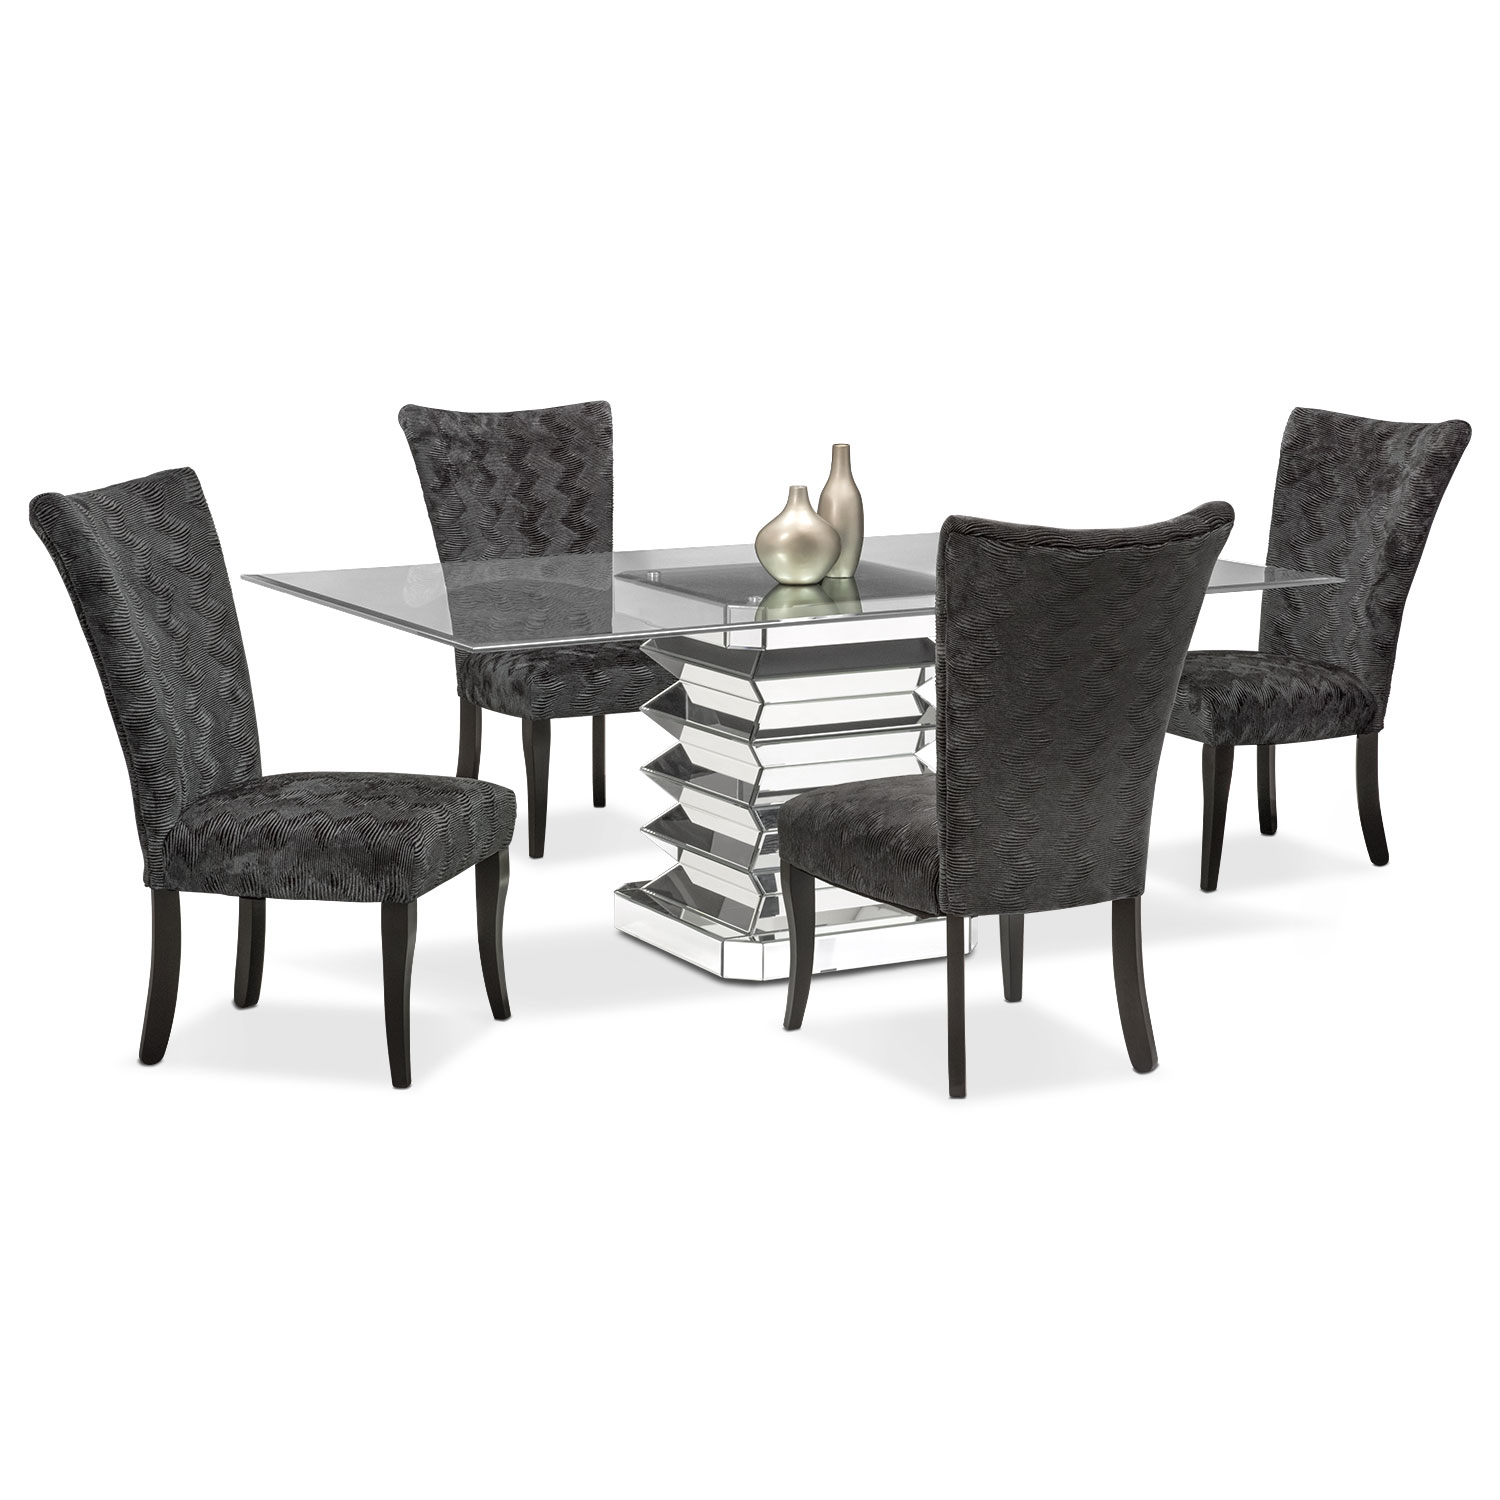 Dining Room Furniture - Vibrato Table and 4 Chairs - Charcoal